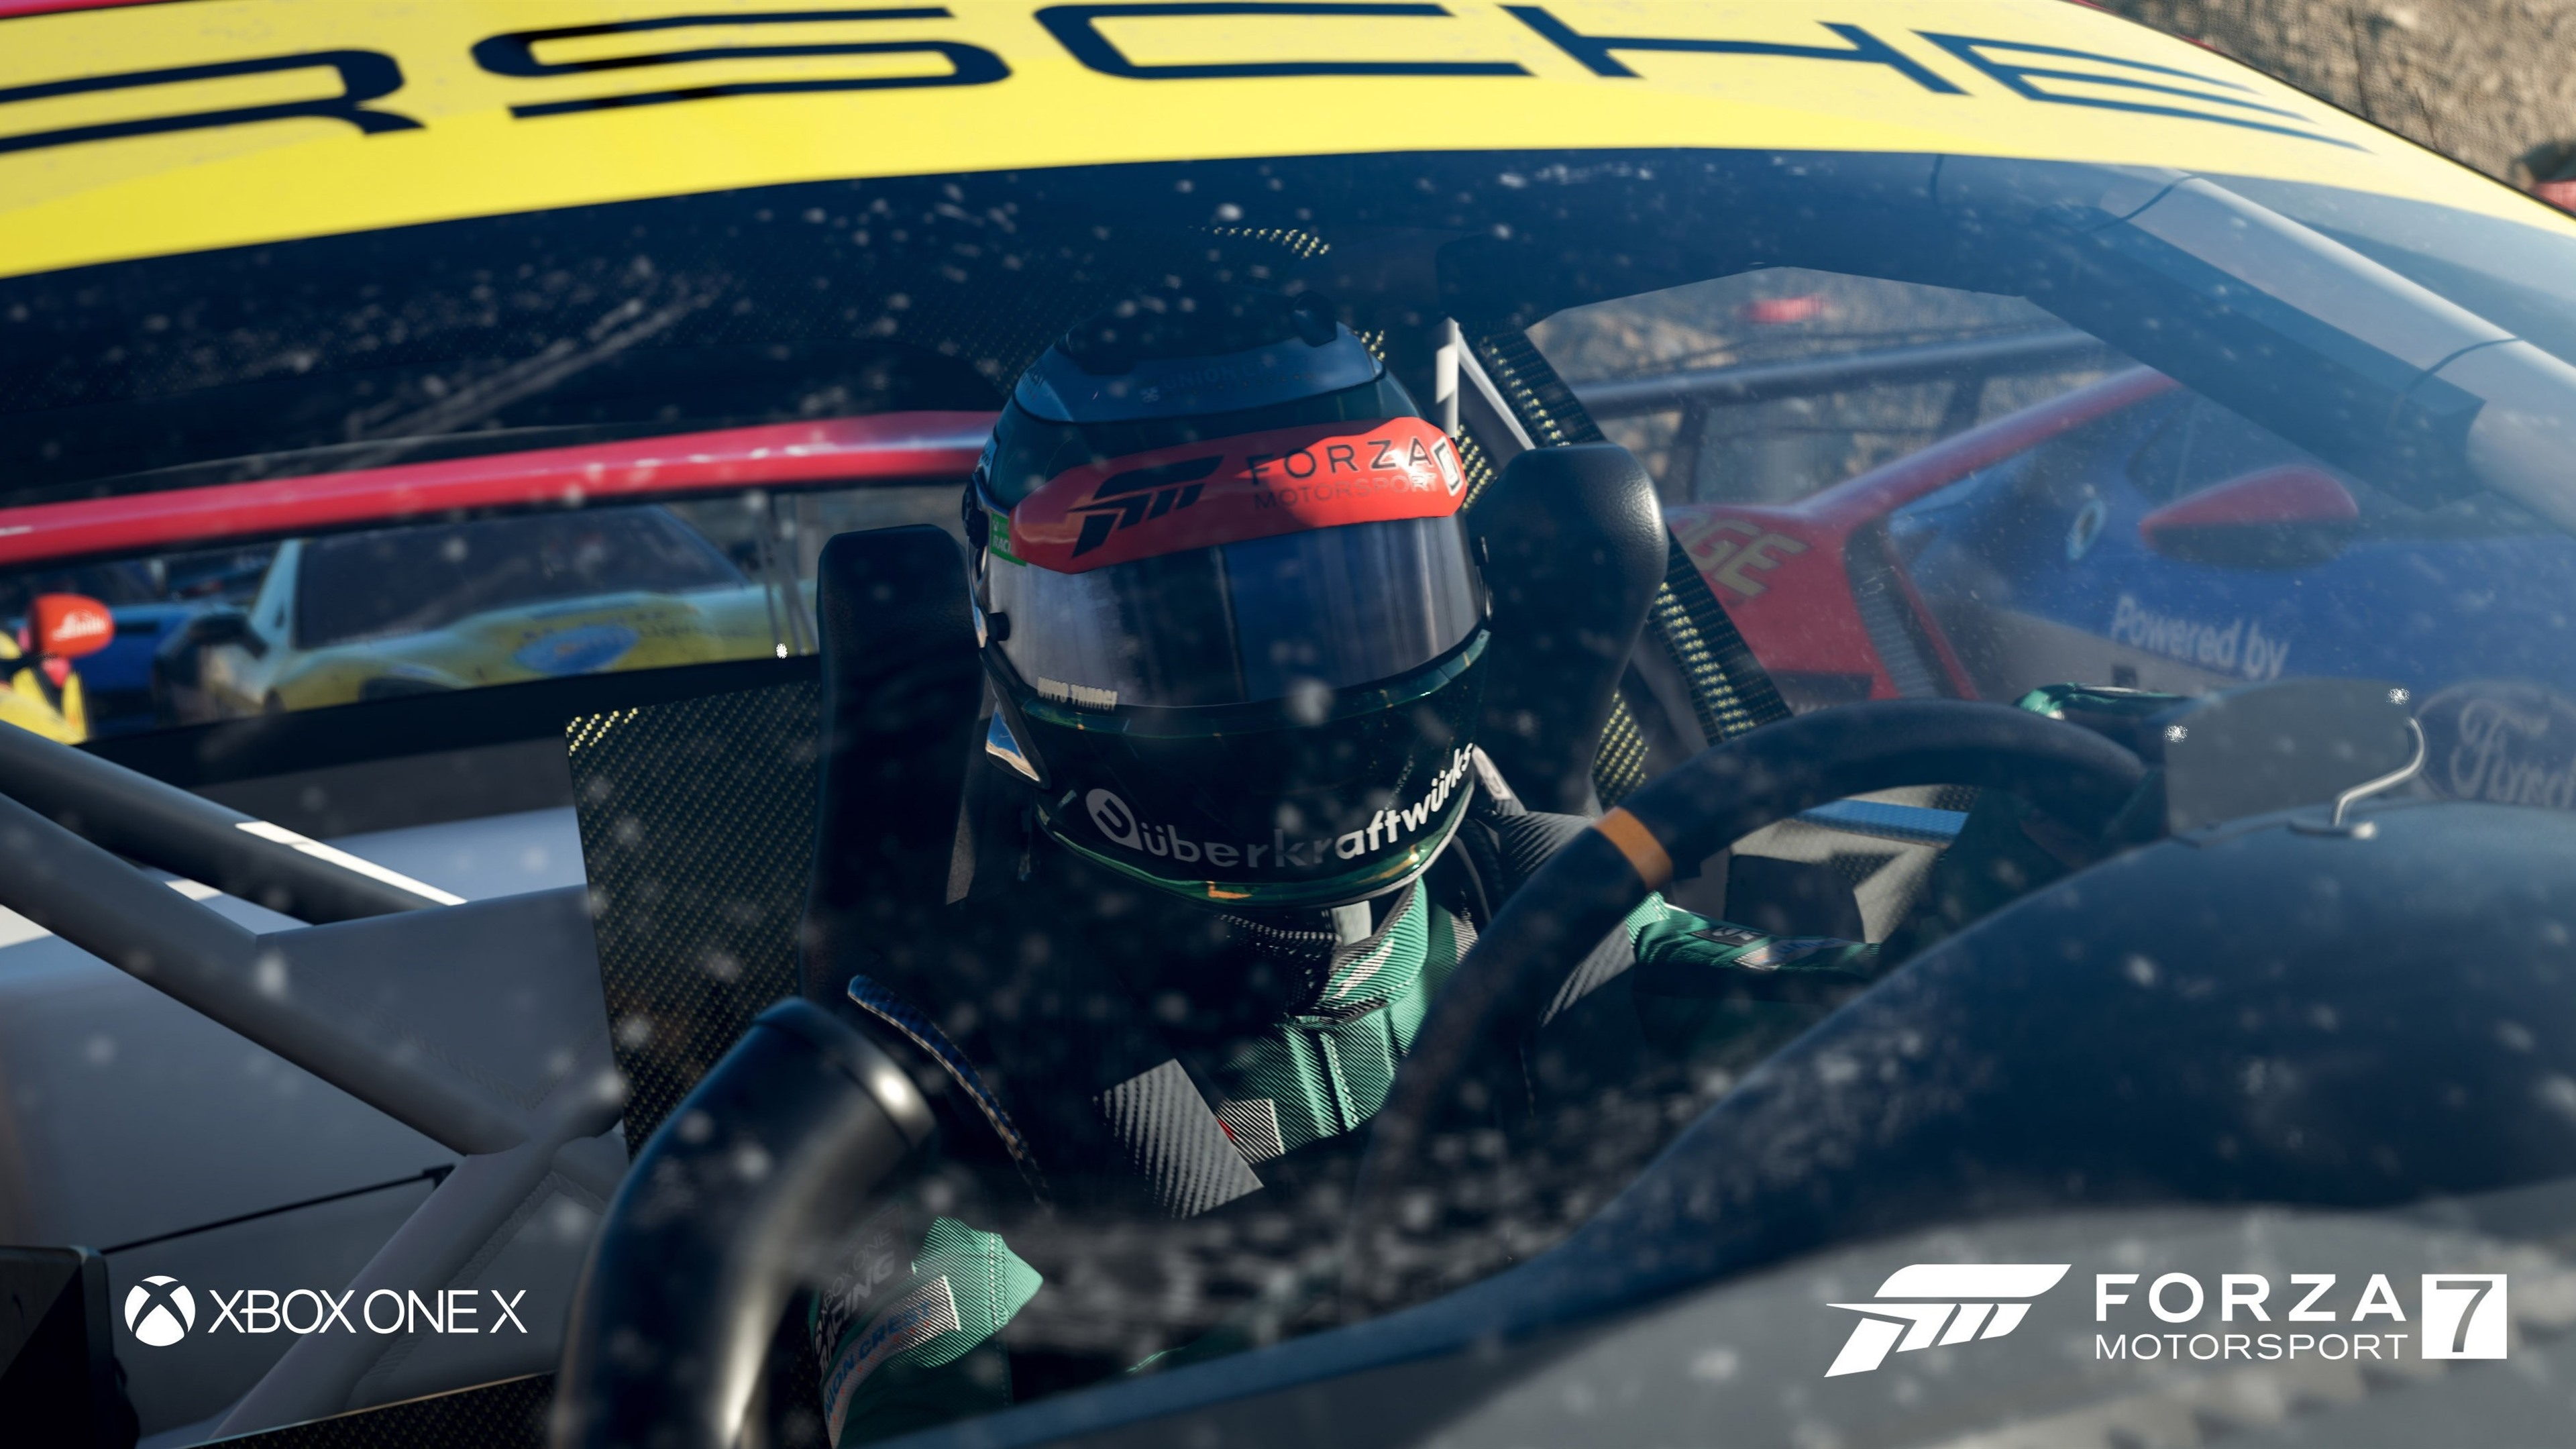 Forza Motorsport 7 Wallpapers Ultra Hd Gaming Backgrounds: Wallpaper Forza Motorsport 7, Xbox One Games 3840x2160 UHD